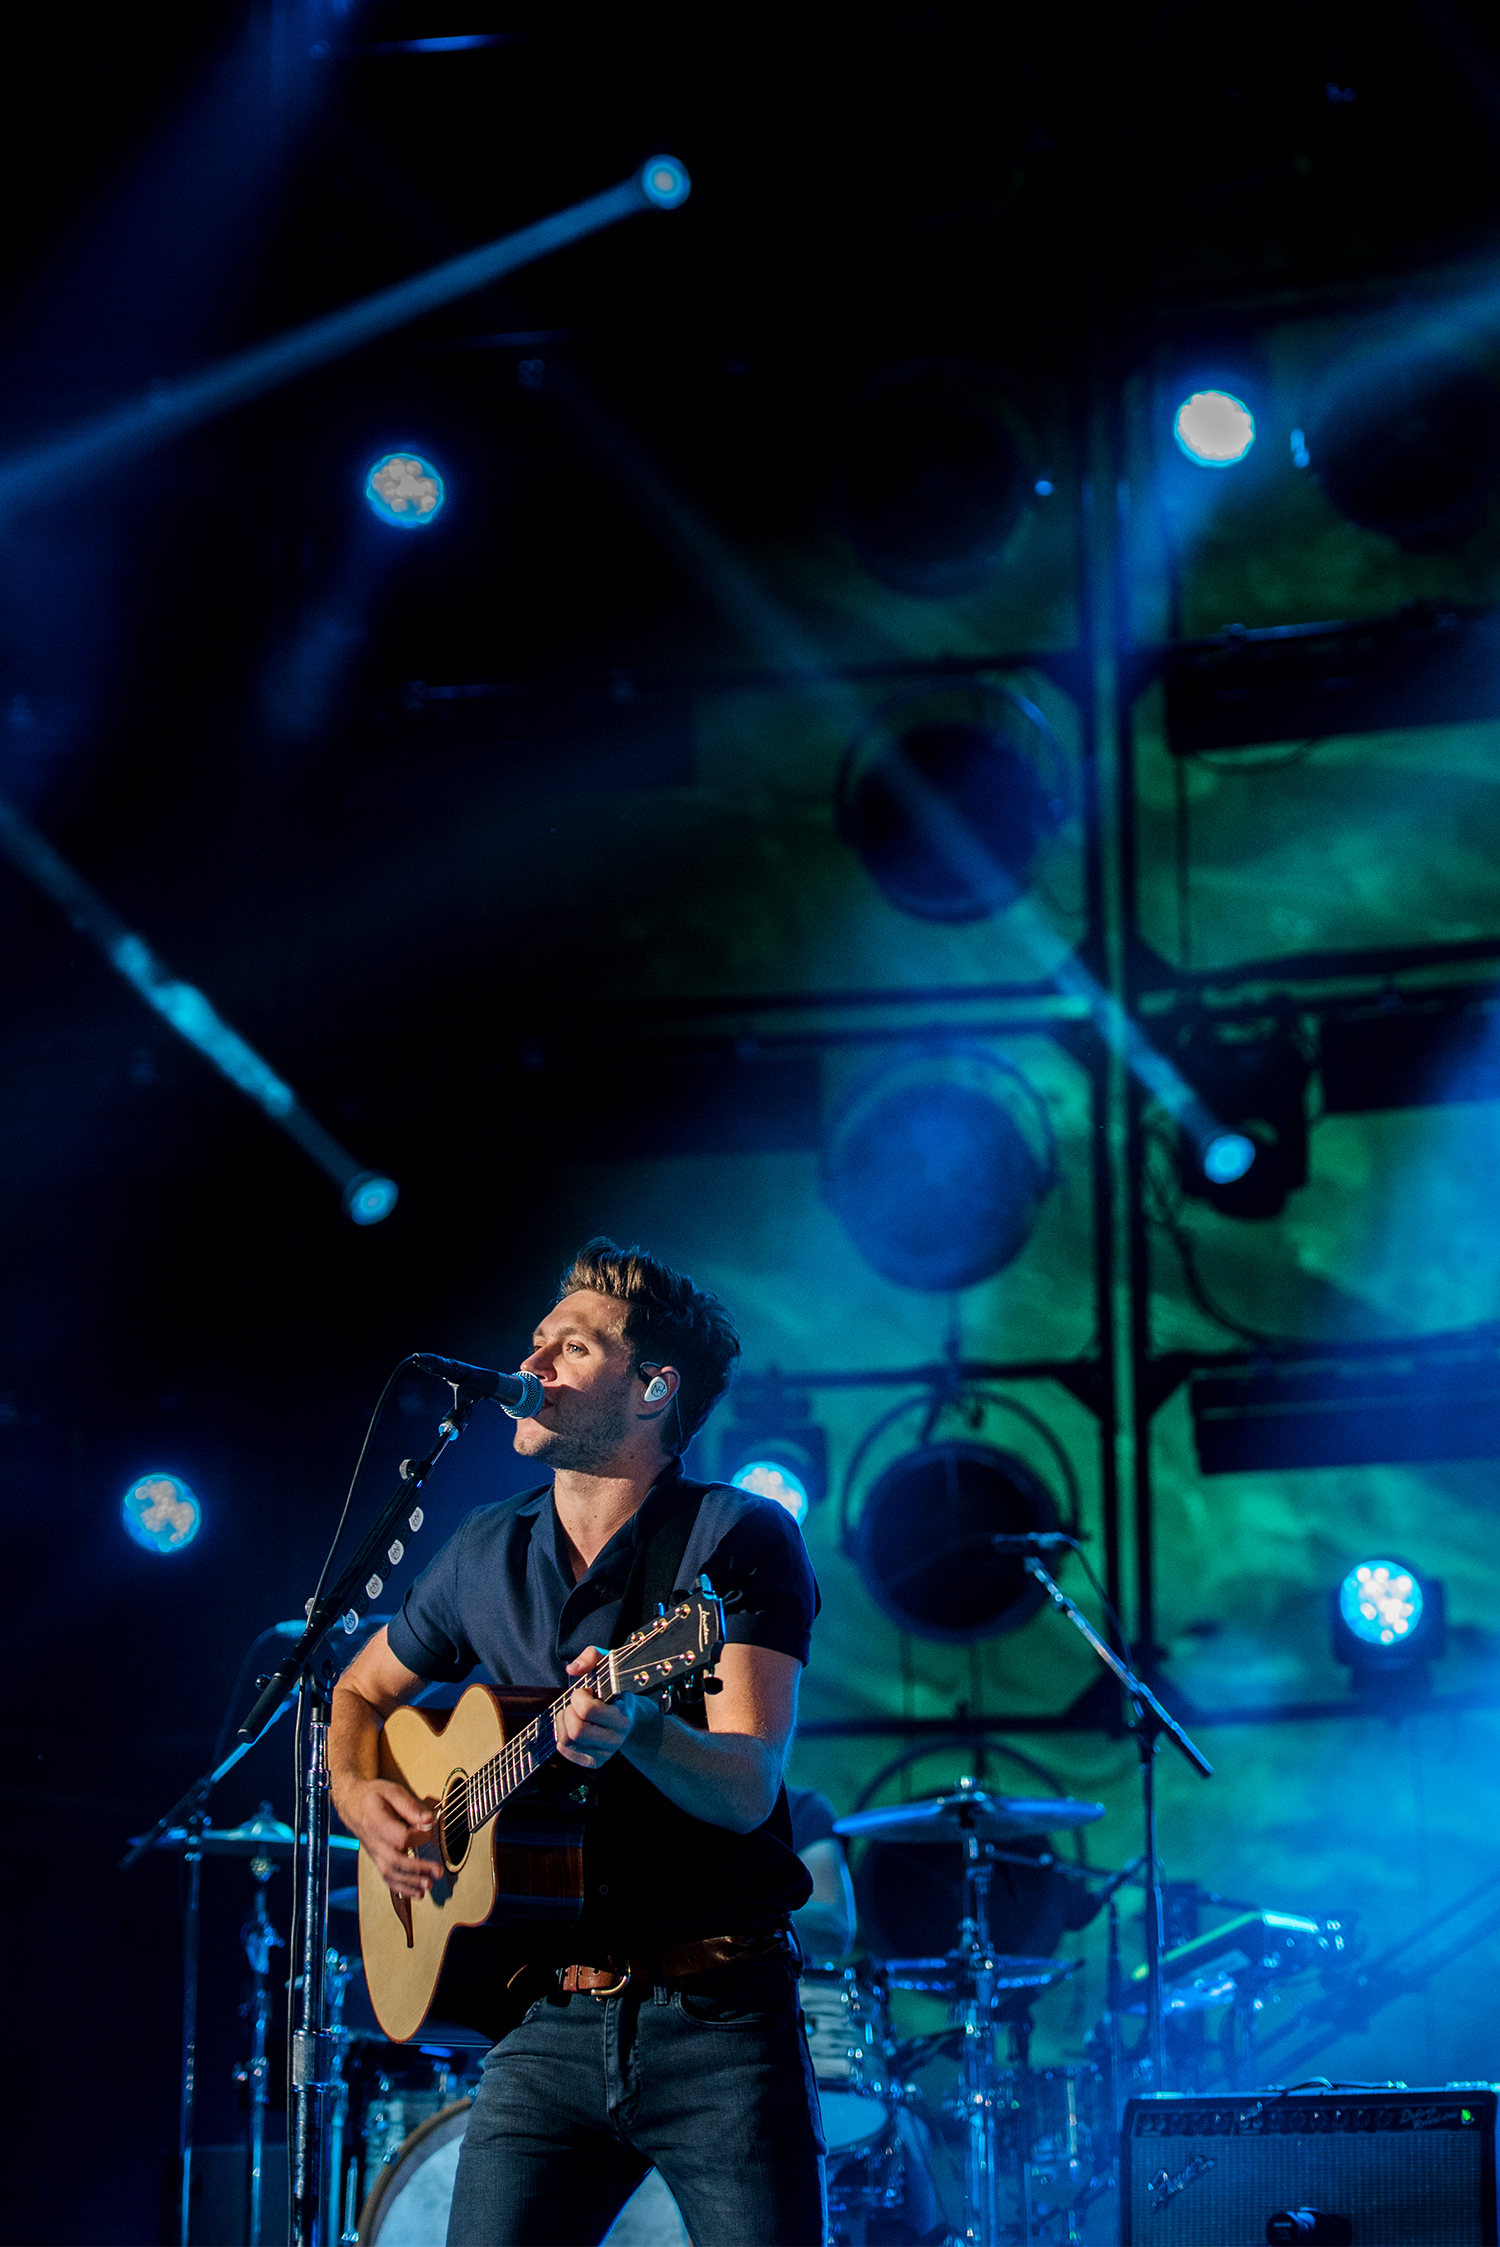 NiallHoranRedRocks8202018 (13 of 32).jpg